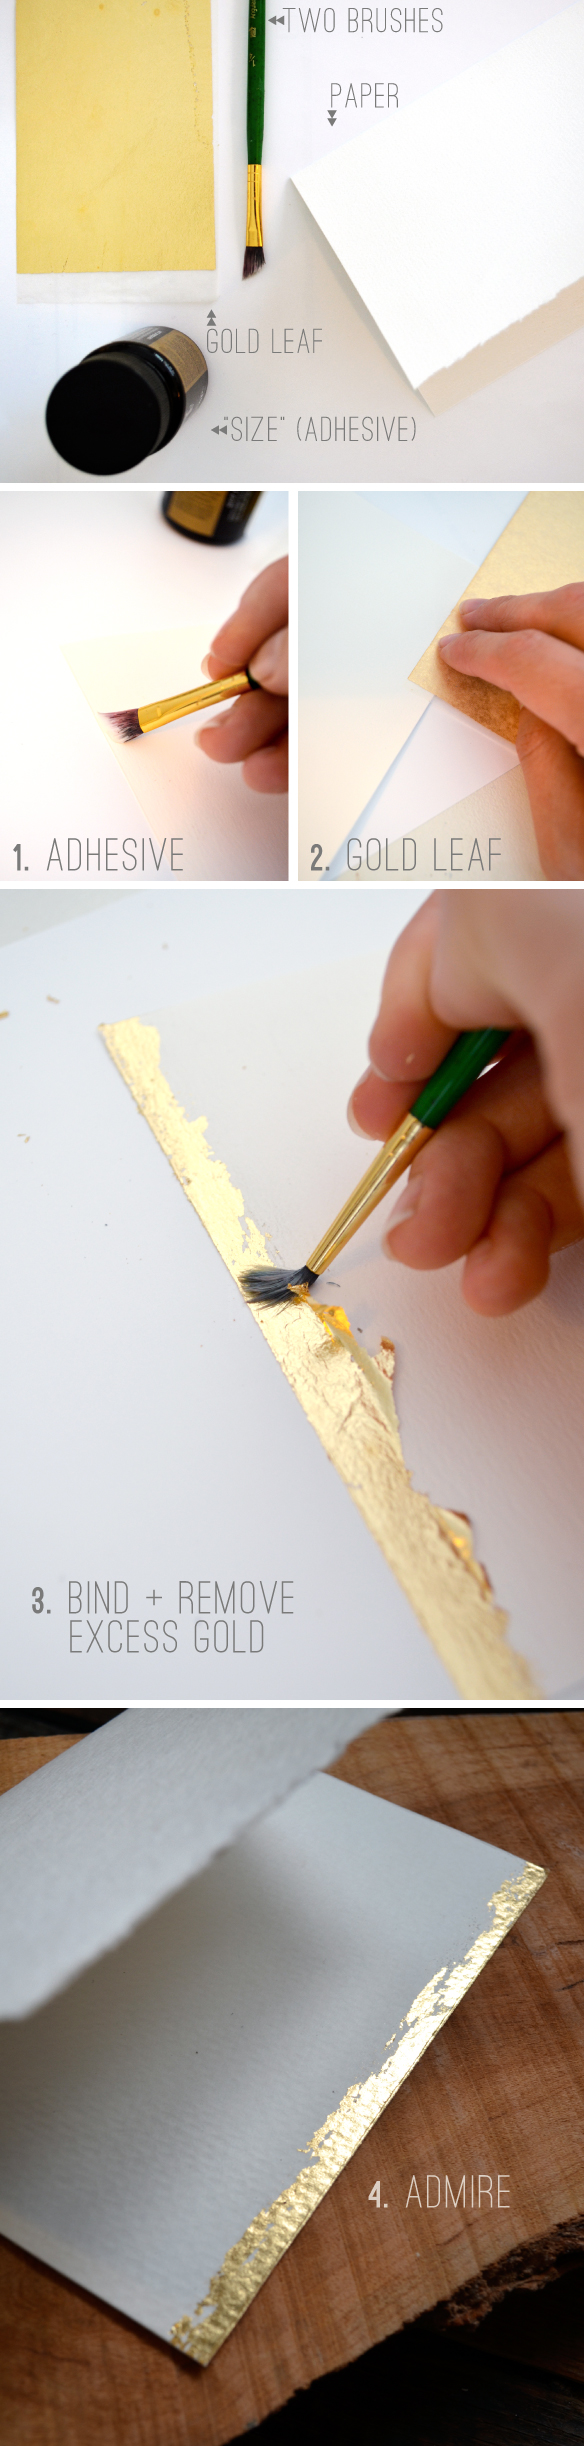 gold leaf greeting card DIY : BeautifulHelloBlog.com